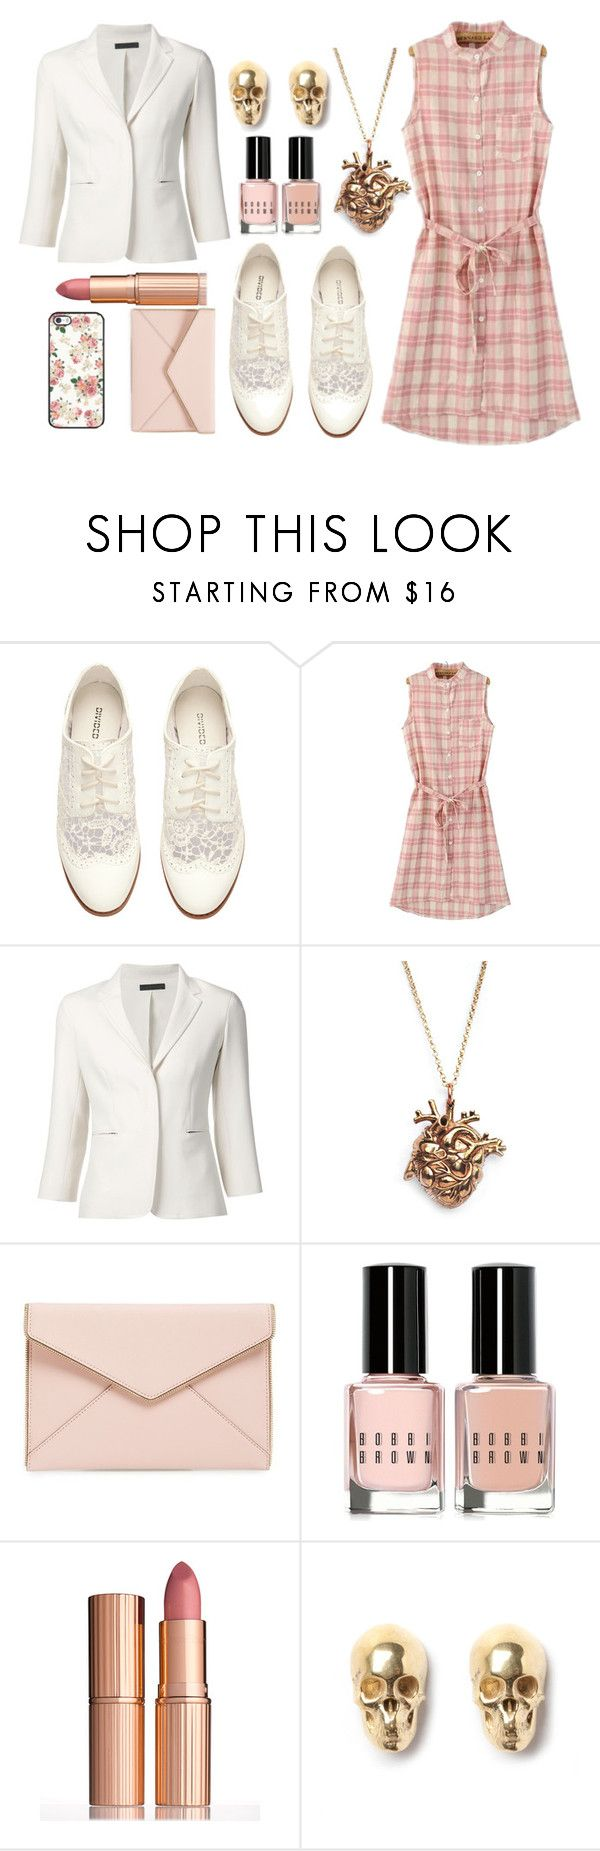 """""""You do count. You've always counted."""" by peregrinetook ❤ liked on Polyvore featuring H&M, The Row, Justine Brooks, Rebecca Minkoff, Bobbi Brown Cosmetics, Charlotte Tilbury, LeiVanKash and sherlock"""